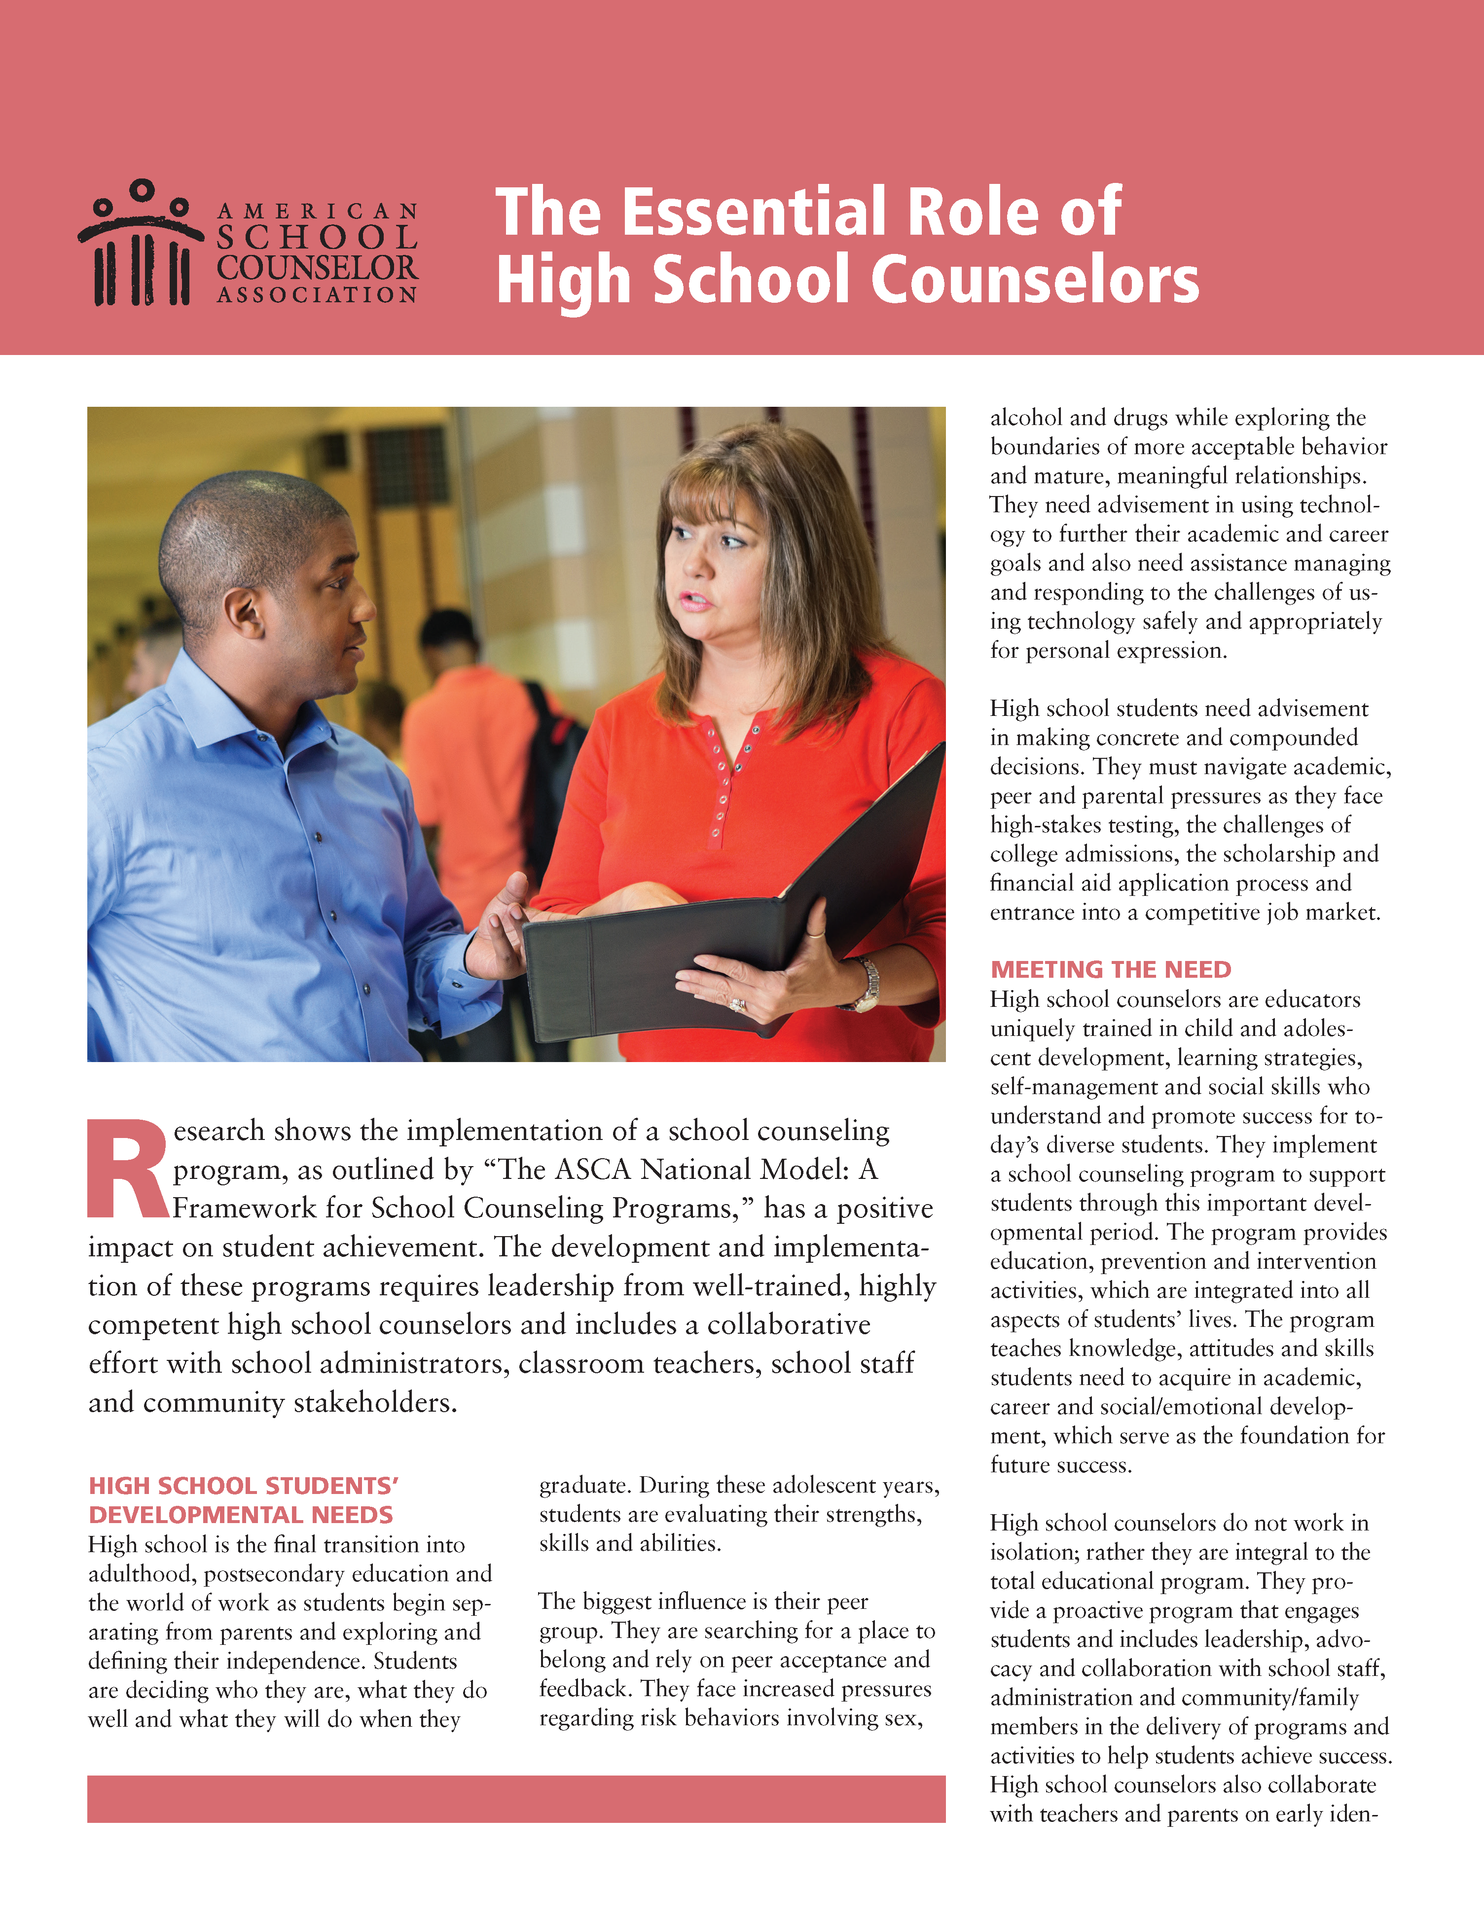 graphic describing high school counselors role